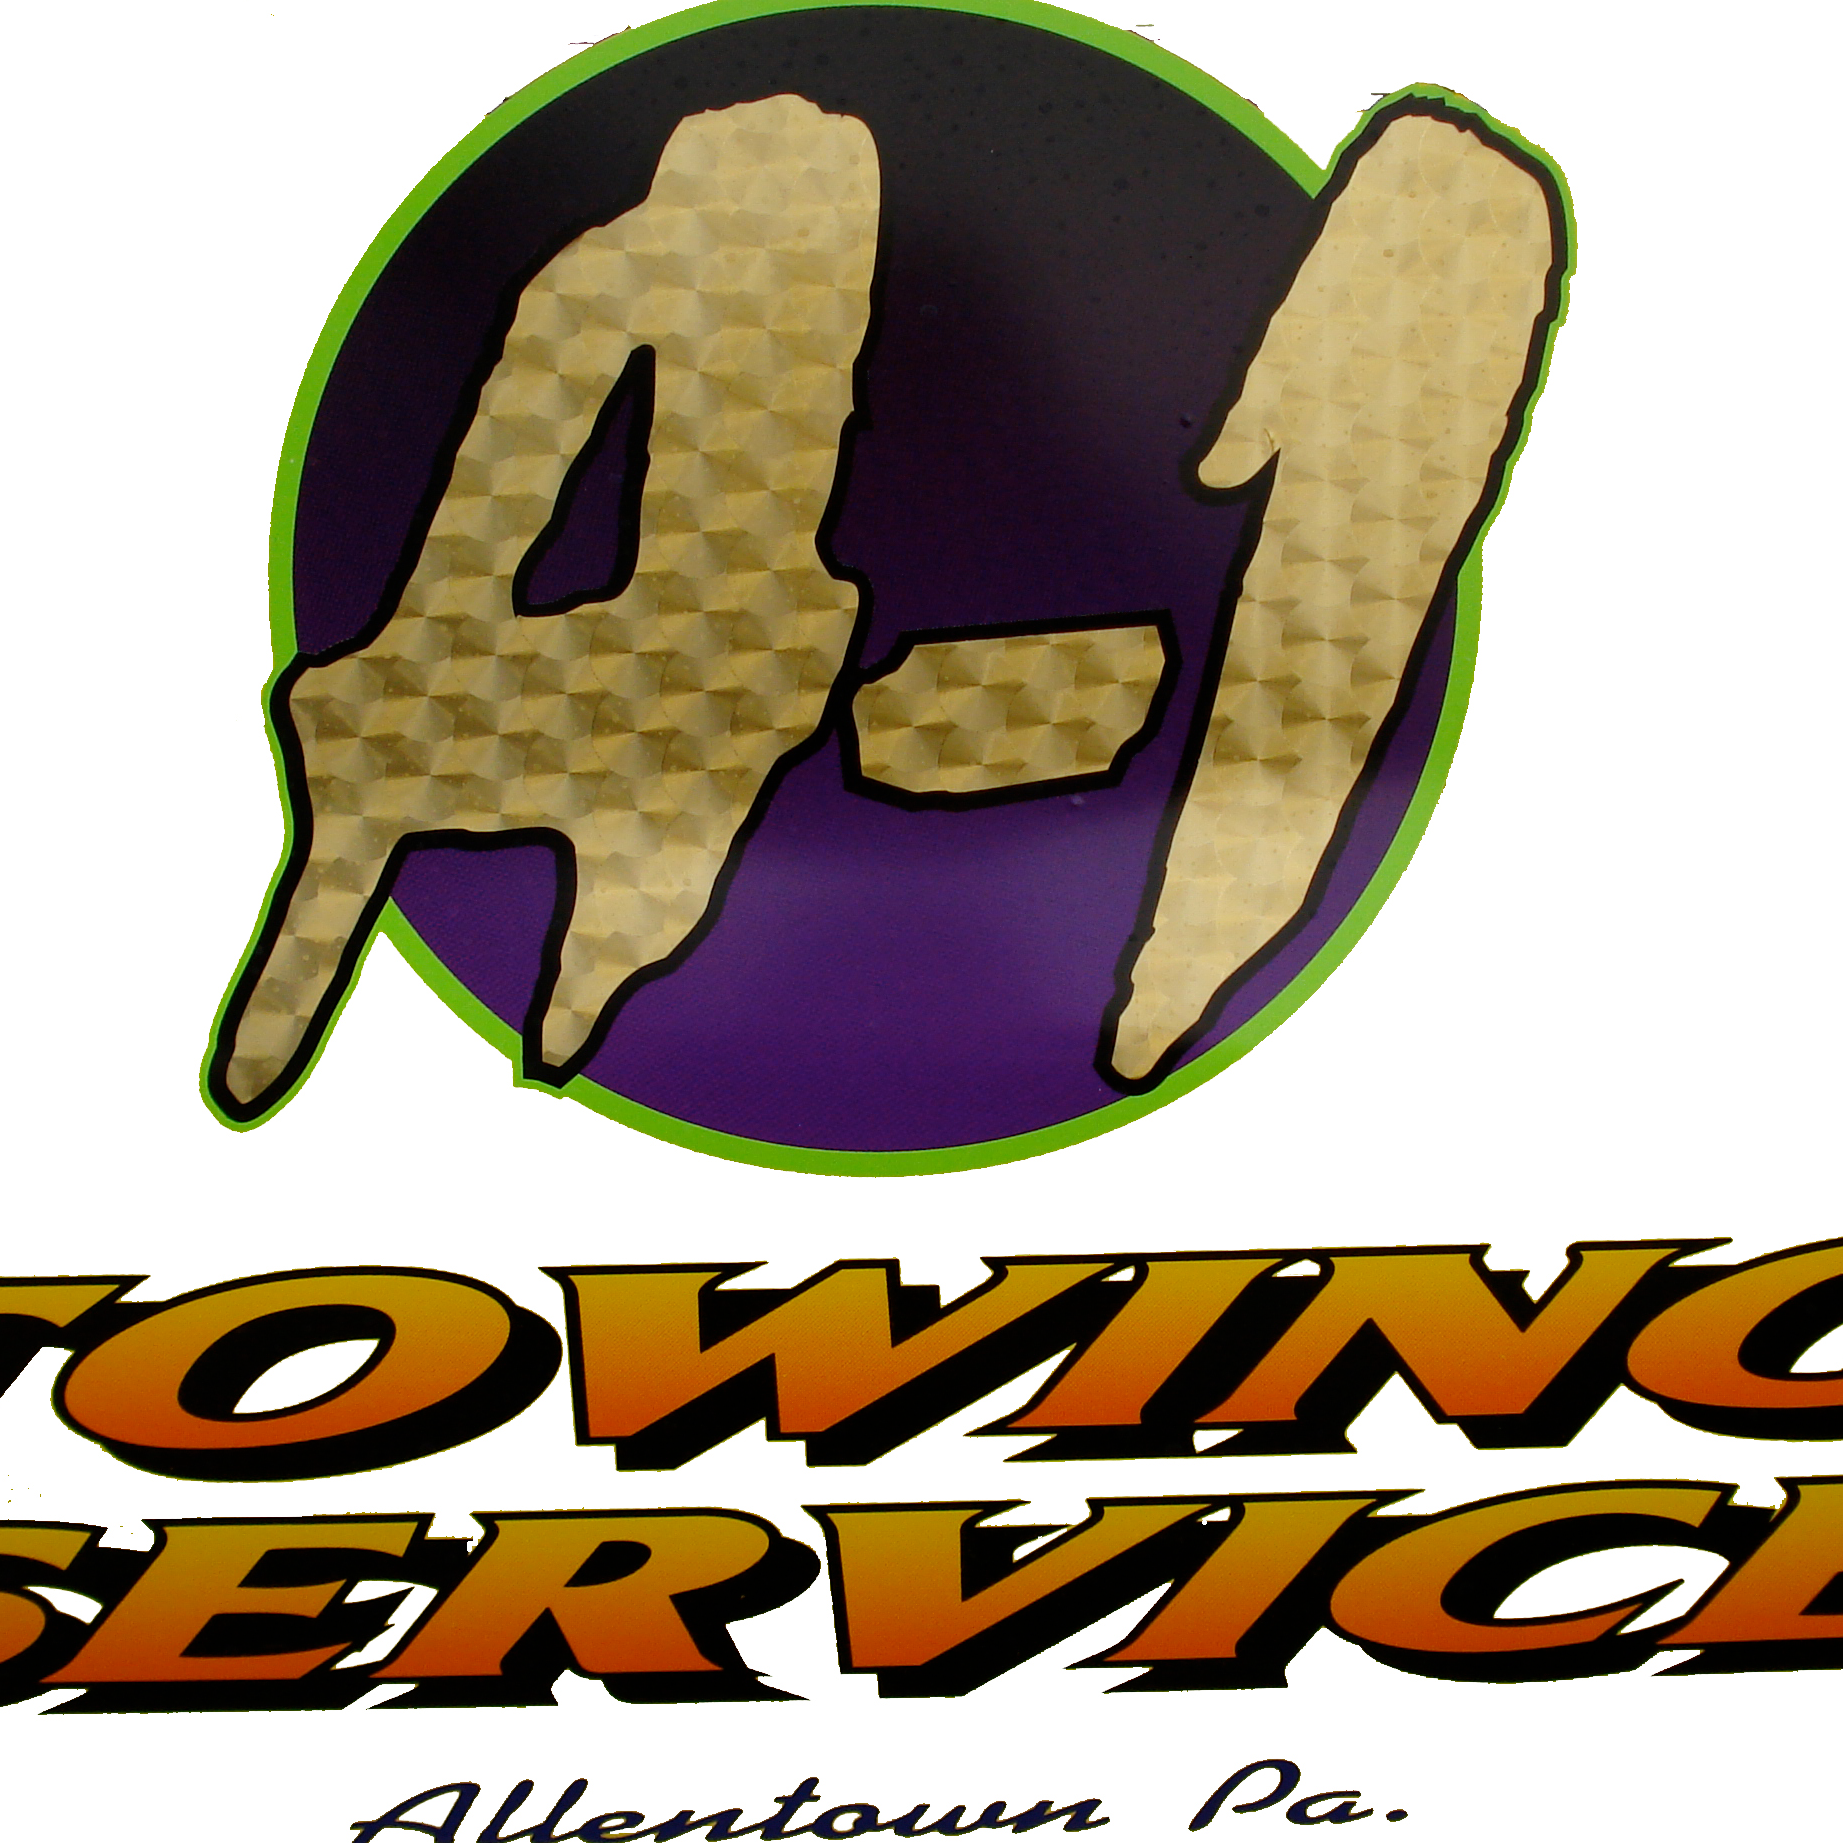 A-1 Towing Service logo